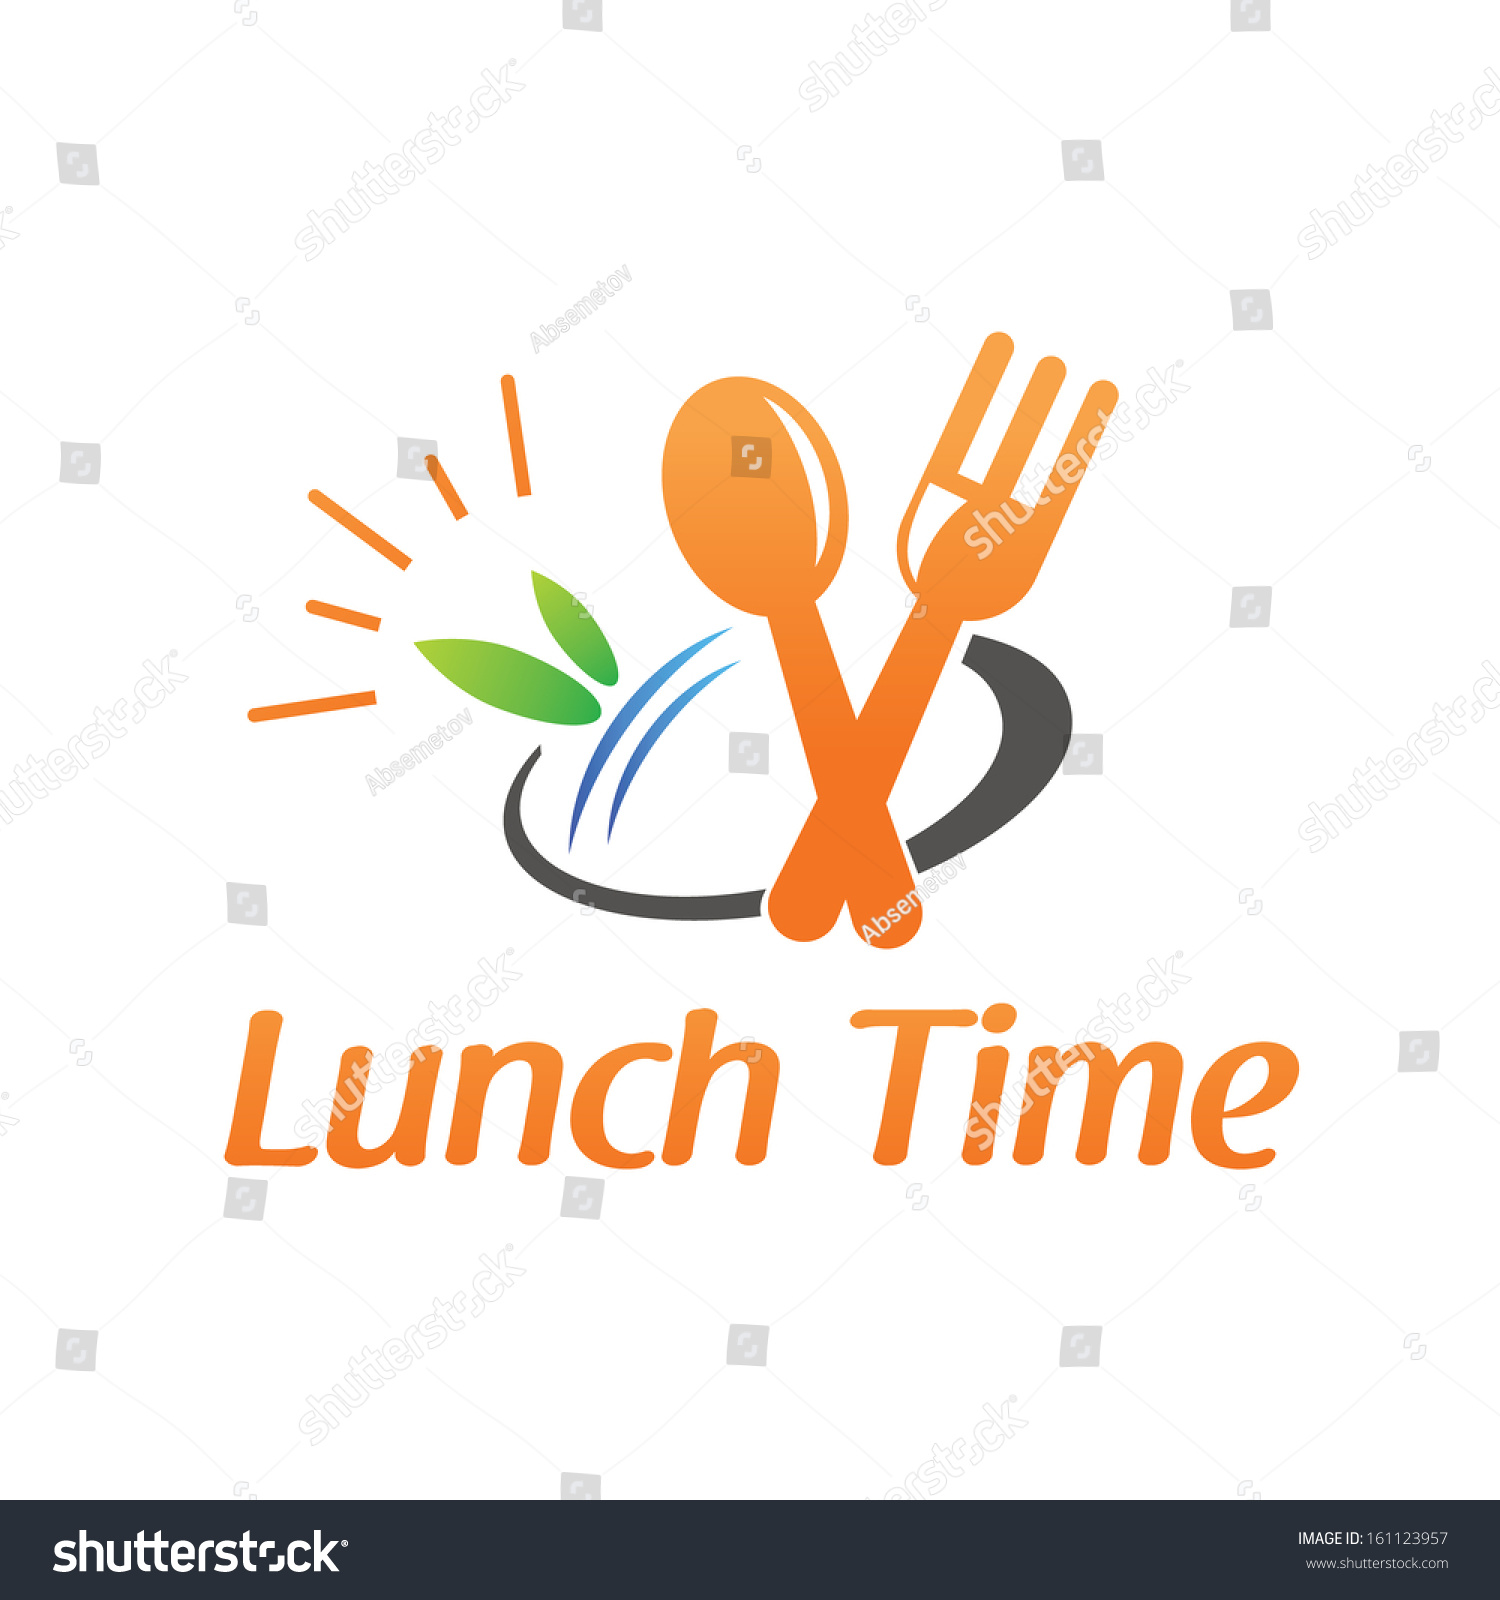 Lunch Time Pictures to Pin on Pinterest - PinsDaddy